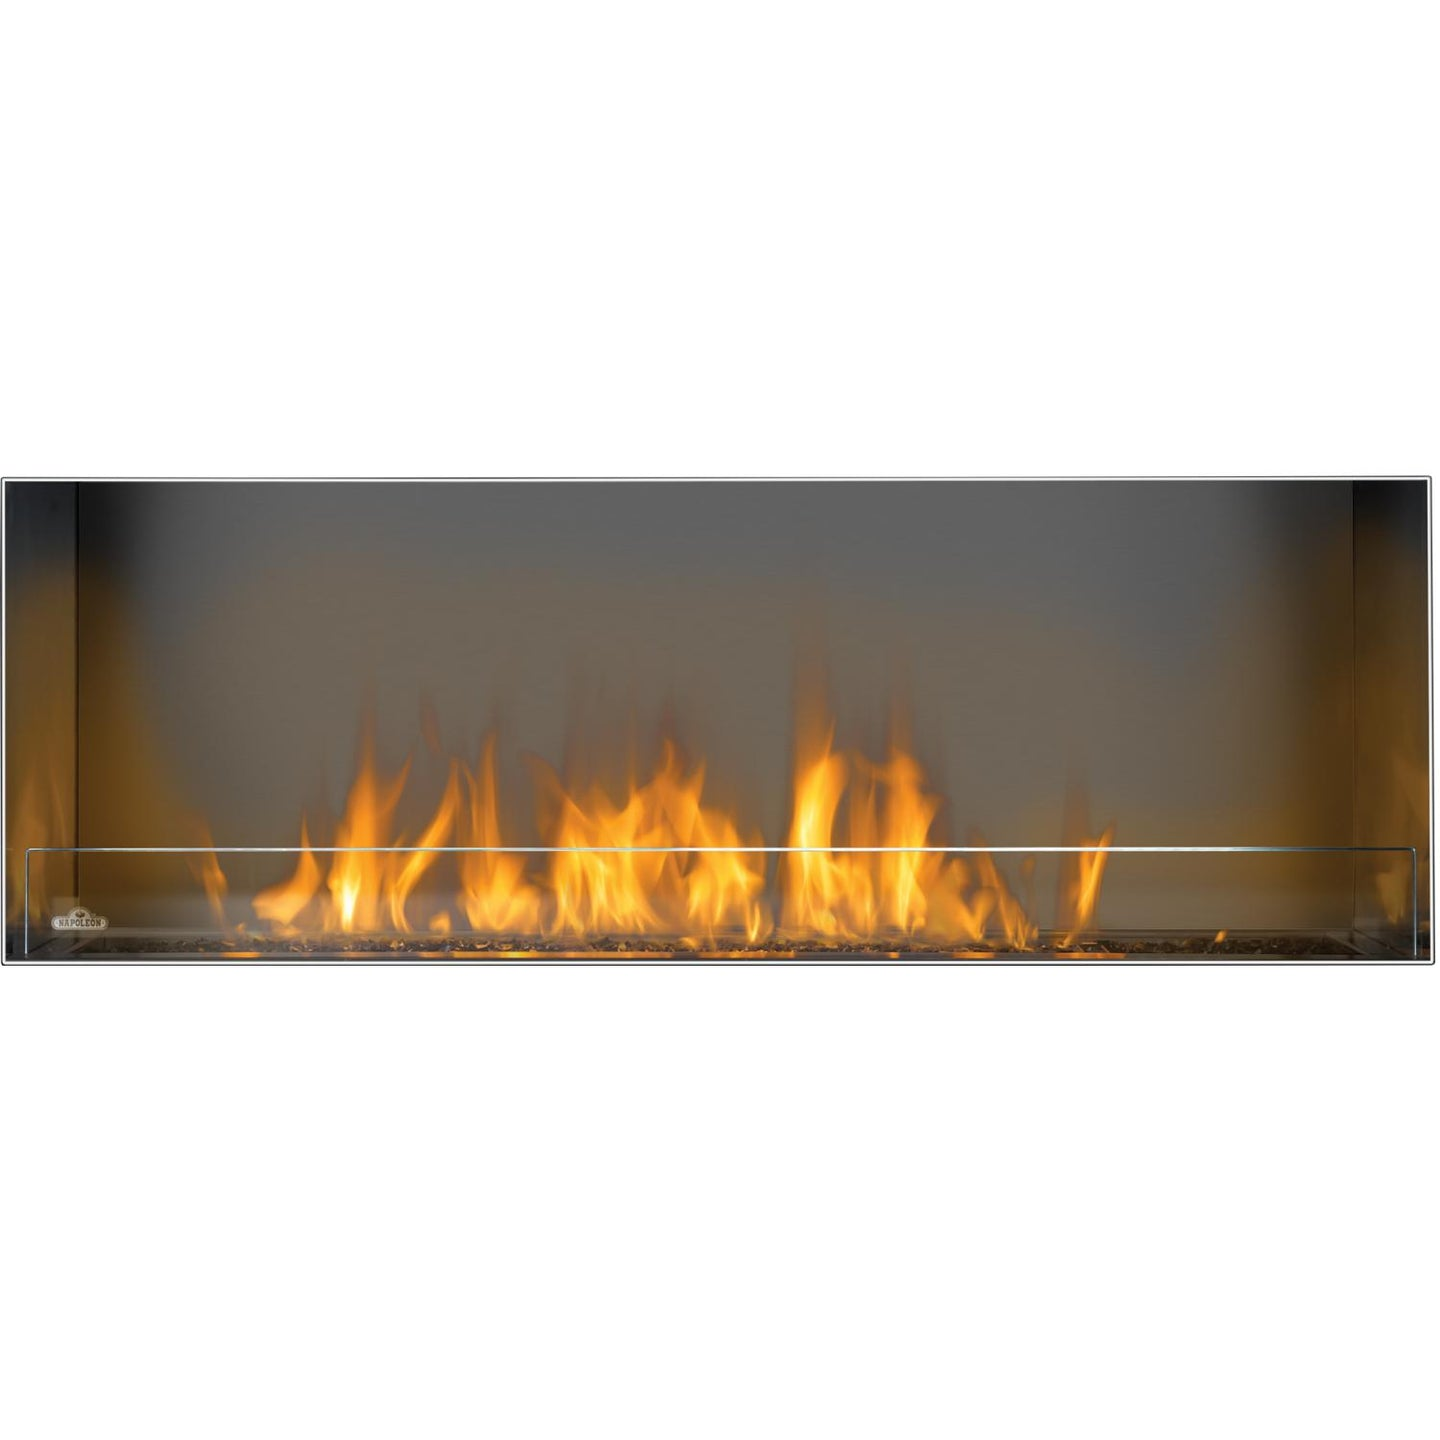 gas natural stock for surround fireplace home of burning fuel comfort image stone photo